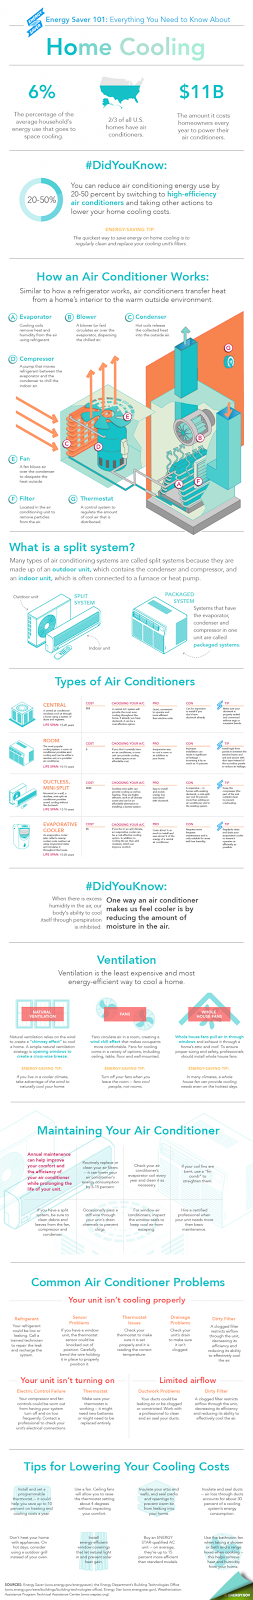 Home Air Cooling infographic